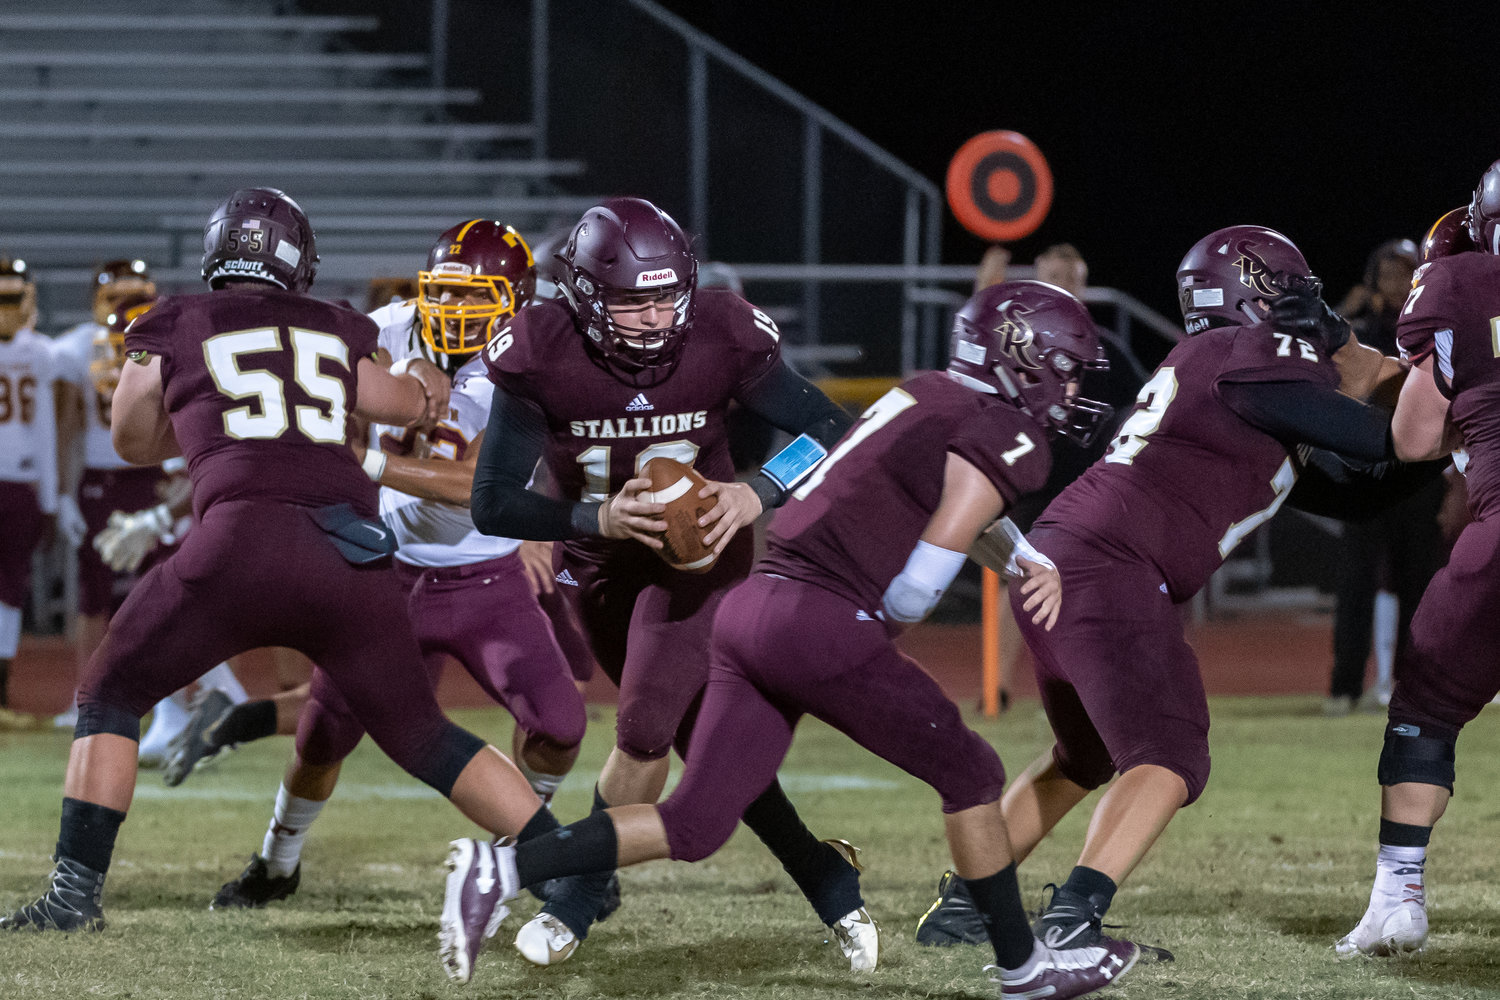 While Shadow Ridge senior quarterback Kaiden Lansford drops back after faking a handoff to senior tailback Michael Clark, junior offensive tackle Jack Chappelle (No. 55) and junior offensive guard Chris Stoica (No. 72) block during a Sept. 27,2019 game against Tolleson. Chappelle and Stoica are back to lead a new-look Stallions offense.